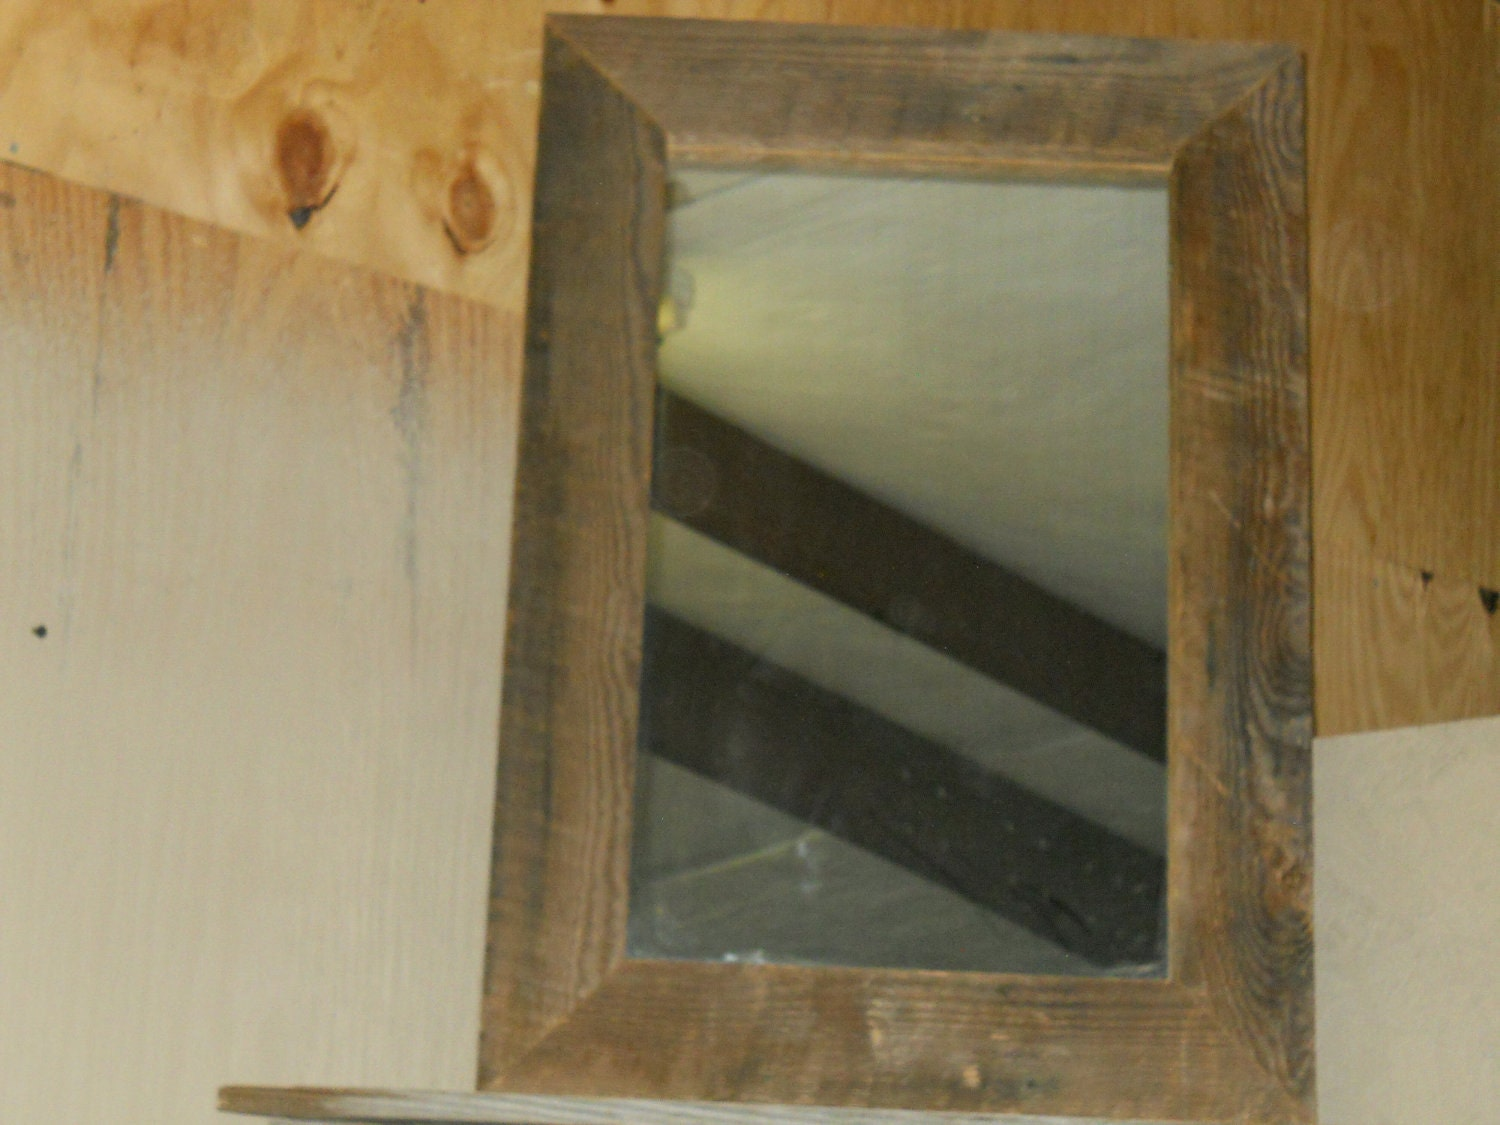 DIY Framed Mirror  Wood and Steel  YouTube